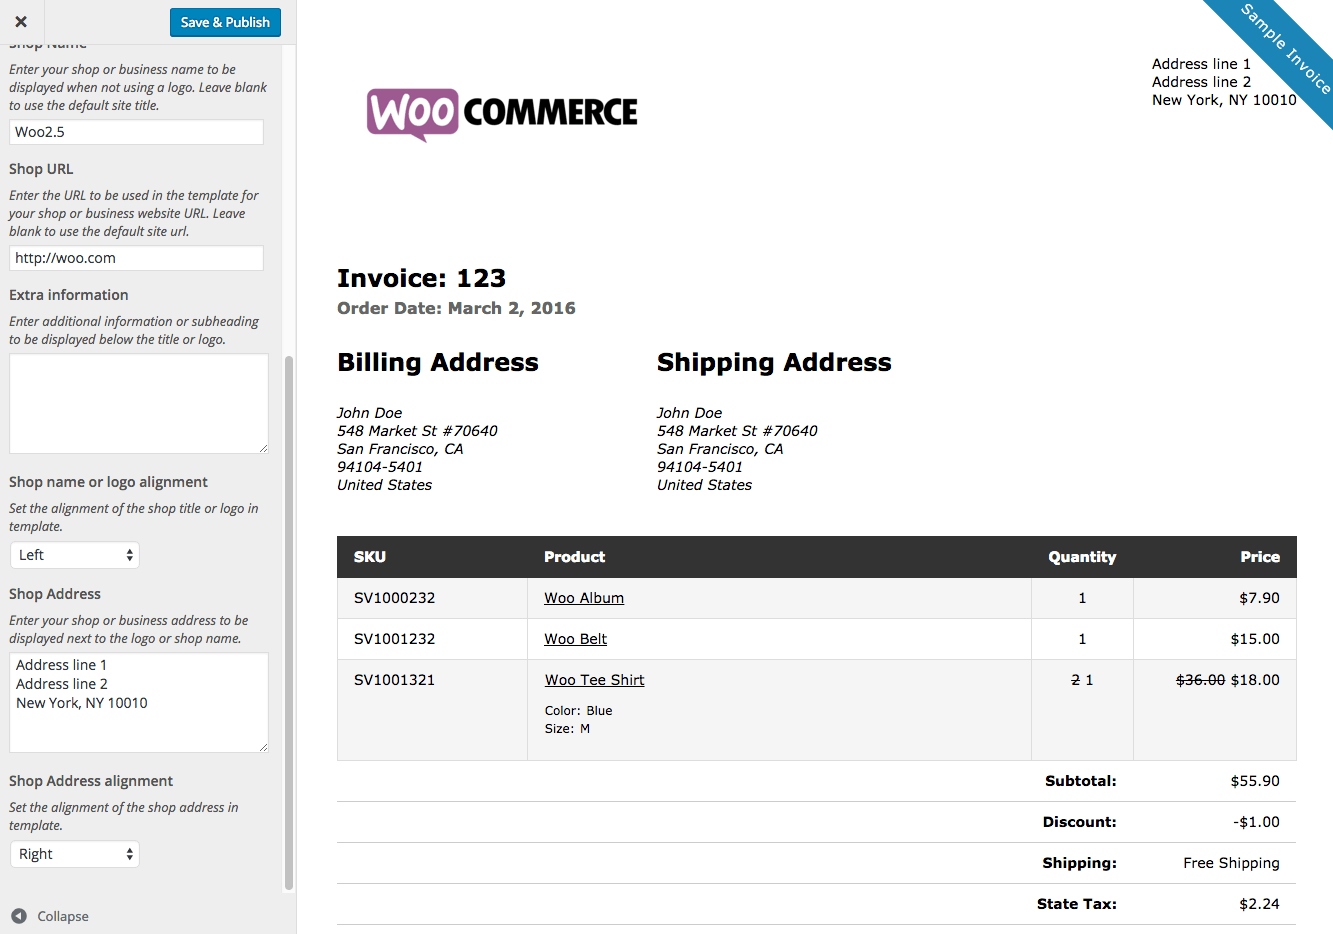 Maidofhonortoastus  Fascinating Woocommerce Print Invoices Amp Packing Lists  Woocommerce Docs With Outstanding Woocommerce Print Invoices  Packing Lists Customizer With Delightful Purchase Invoice Template Also Mechanic Invoice Template In Addition Auto Repair Invoices And Automated Invoice Processing As Well As Sending Paypal Invoice Additionally Custom Invoice Template From Docswoocommercecom With Maidofhonortoastus  Outstanding Woocommerce Print Invoices Amp Packing Lists  Woocommerce Docs With Delightful Woocommerce Print Invoices  Packing Lists Customizer And Fascinating Purchase Invoice Template Also Mechanic Invoice Template In Addition Auto Repair Invoices From Docswoocommercecom